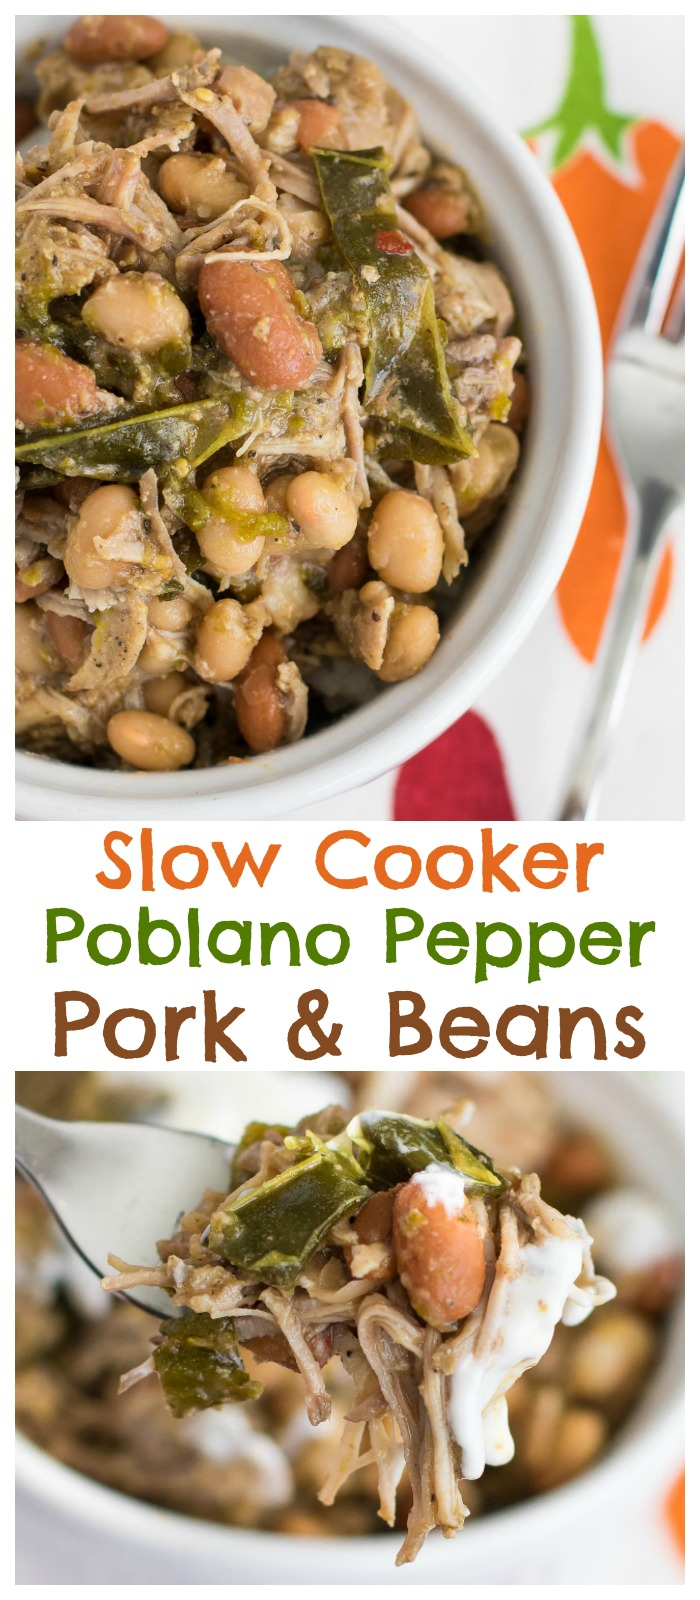 Slow Cooker Pork and Beans with Poblano Peppers is a super simple dinner recipe that tastes incredible! #pork #crockpot #slowcooker #beans